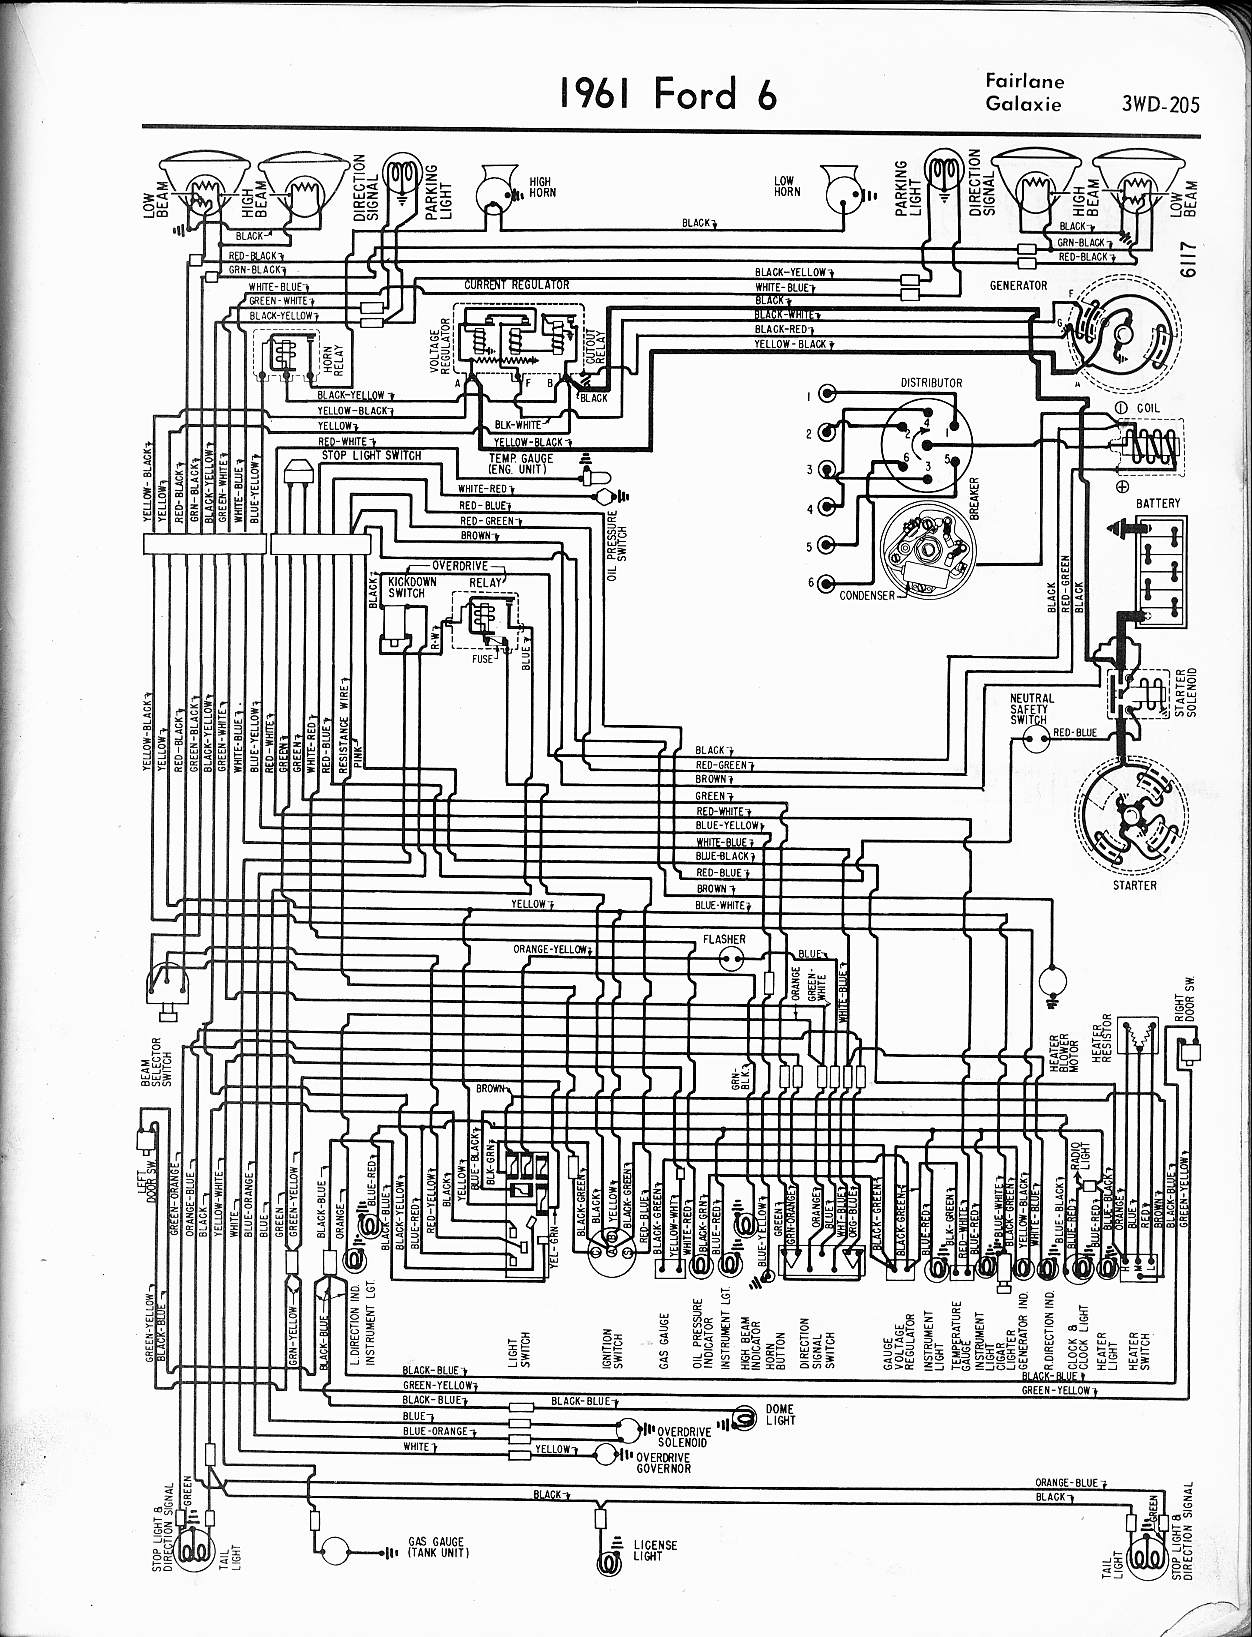 Whirlpool Dryer Wiring Diagram Model Wgd84105w2 Simple Wire Data